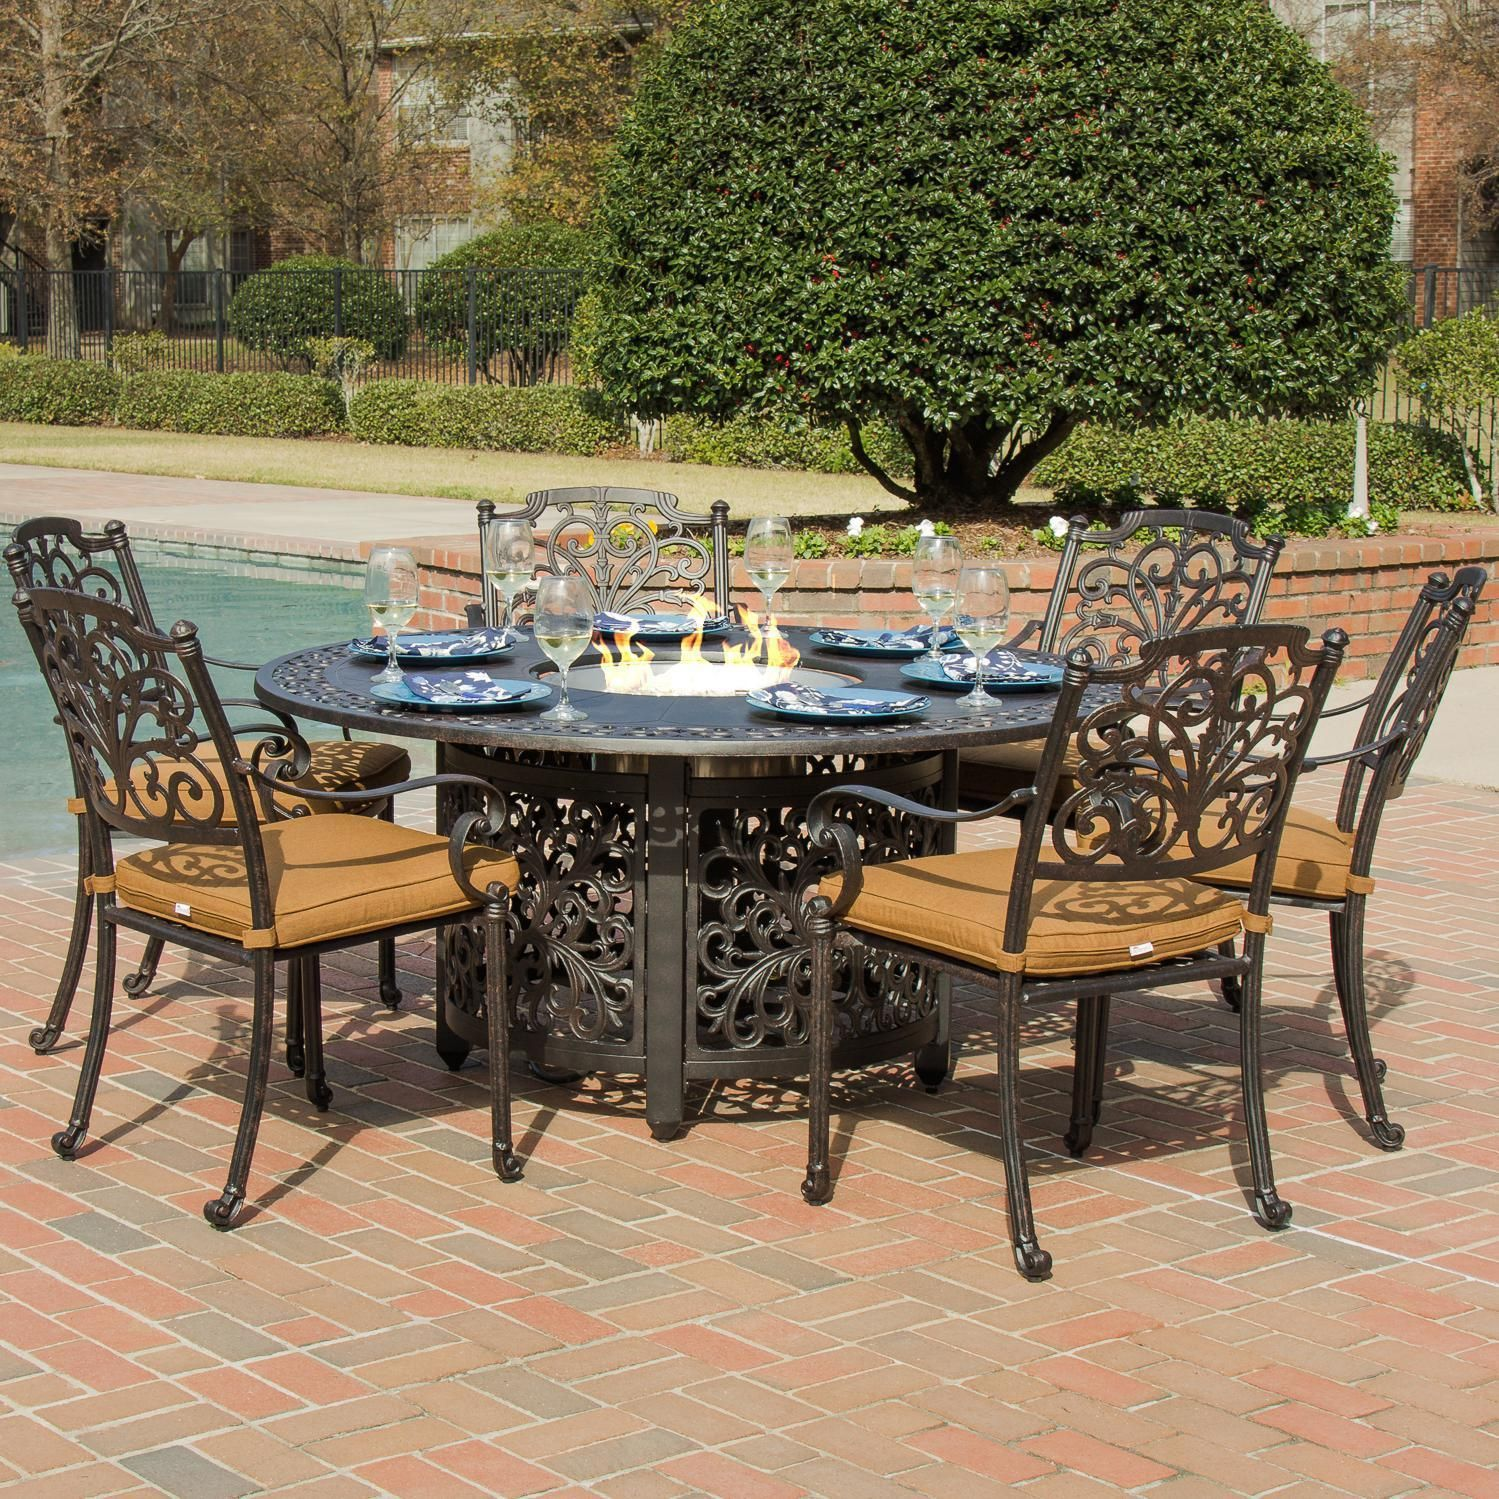 lakeview outdoor designs evangeline cast 6 person patio dining set